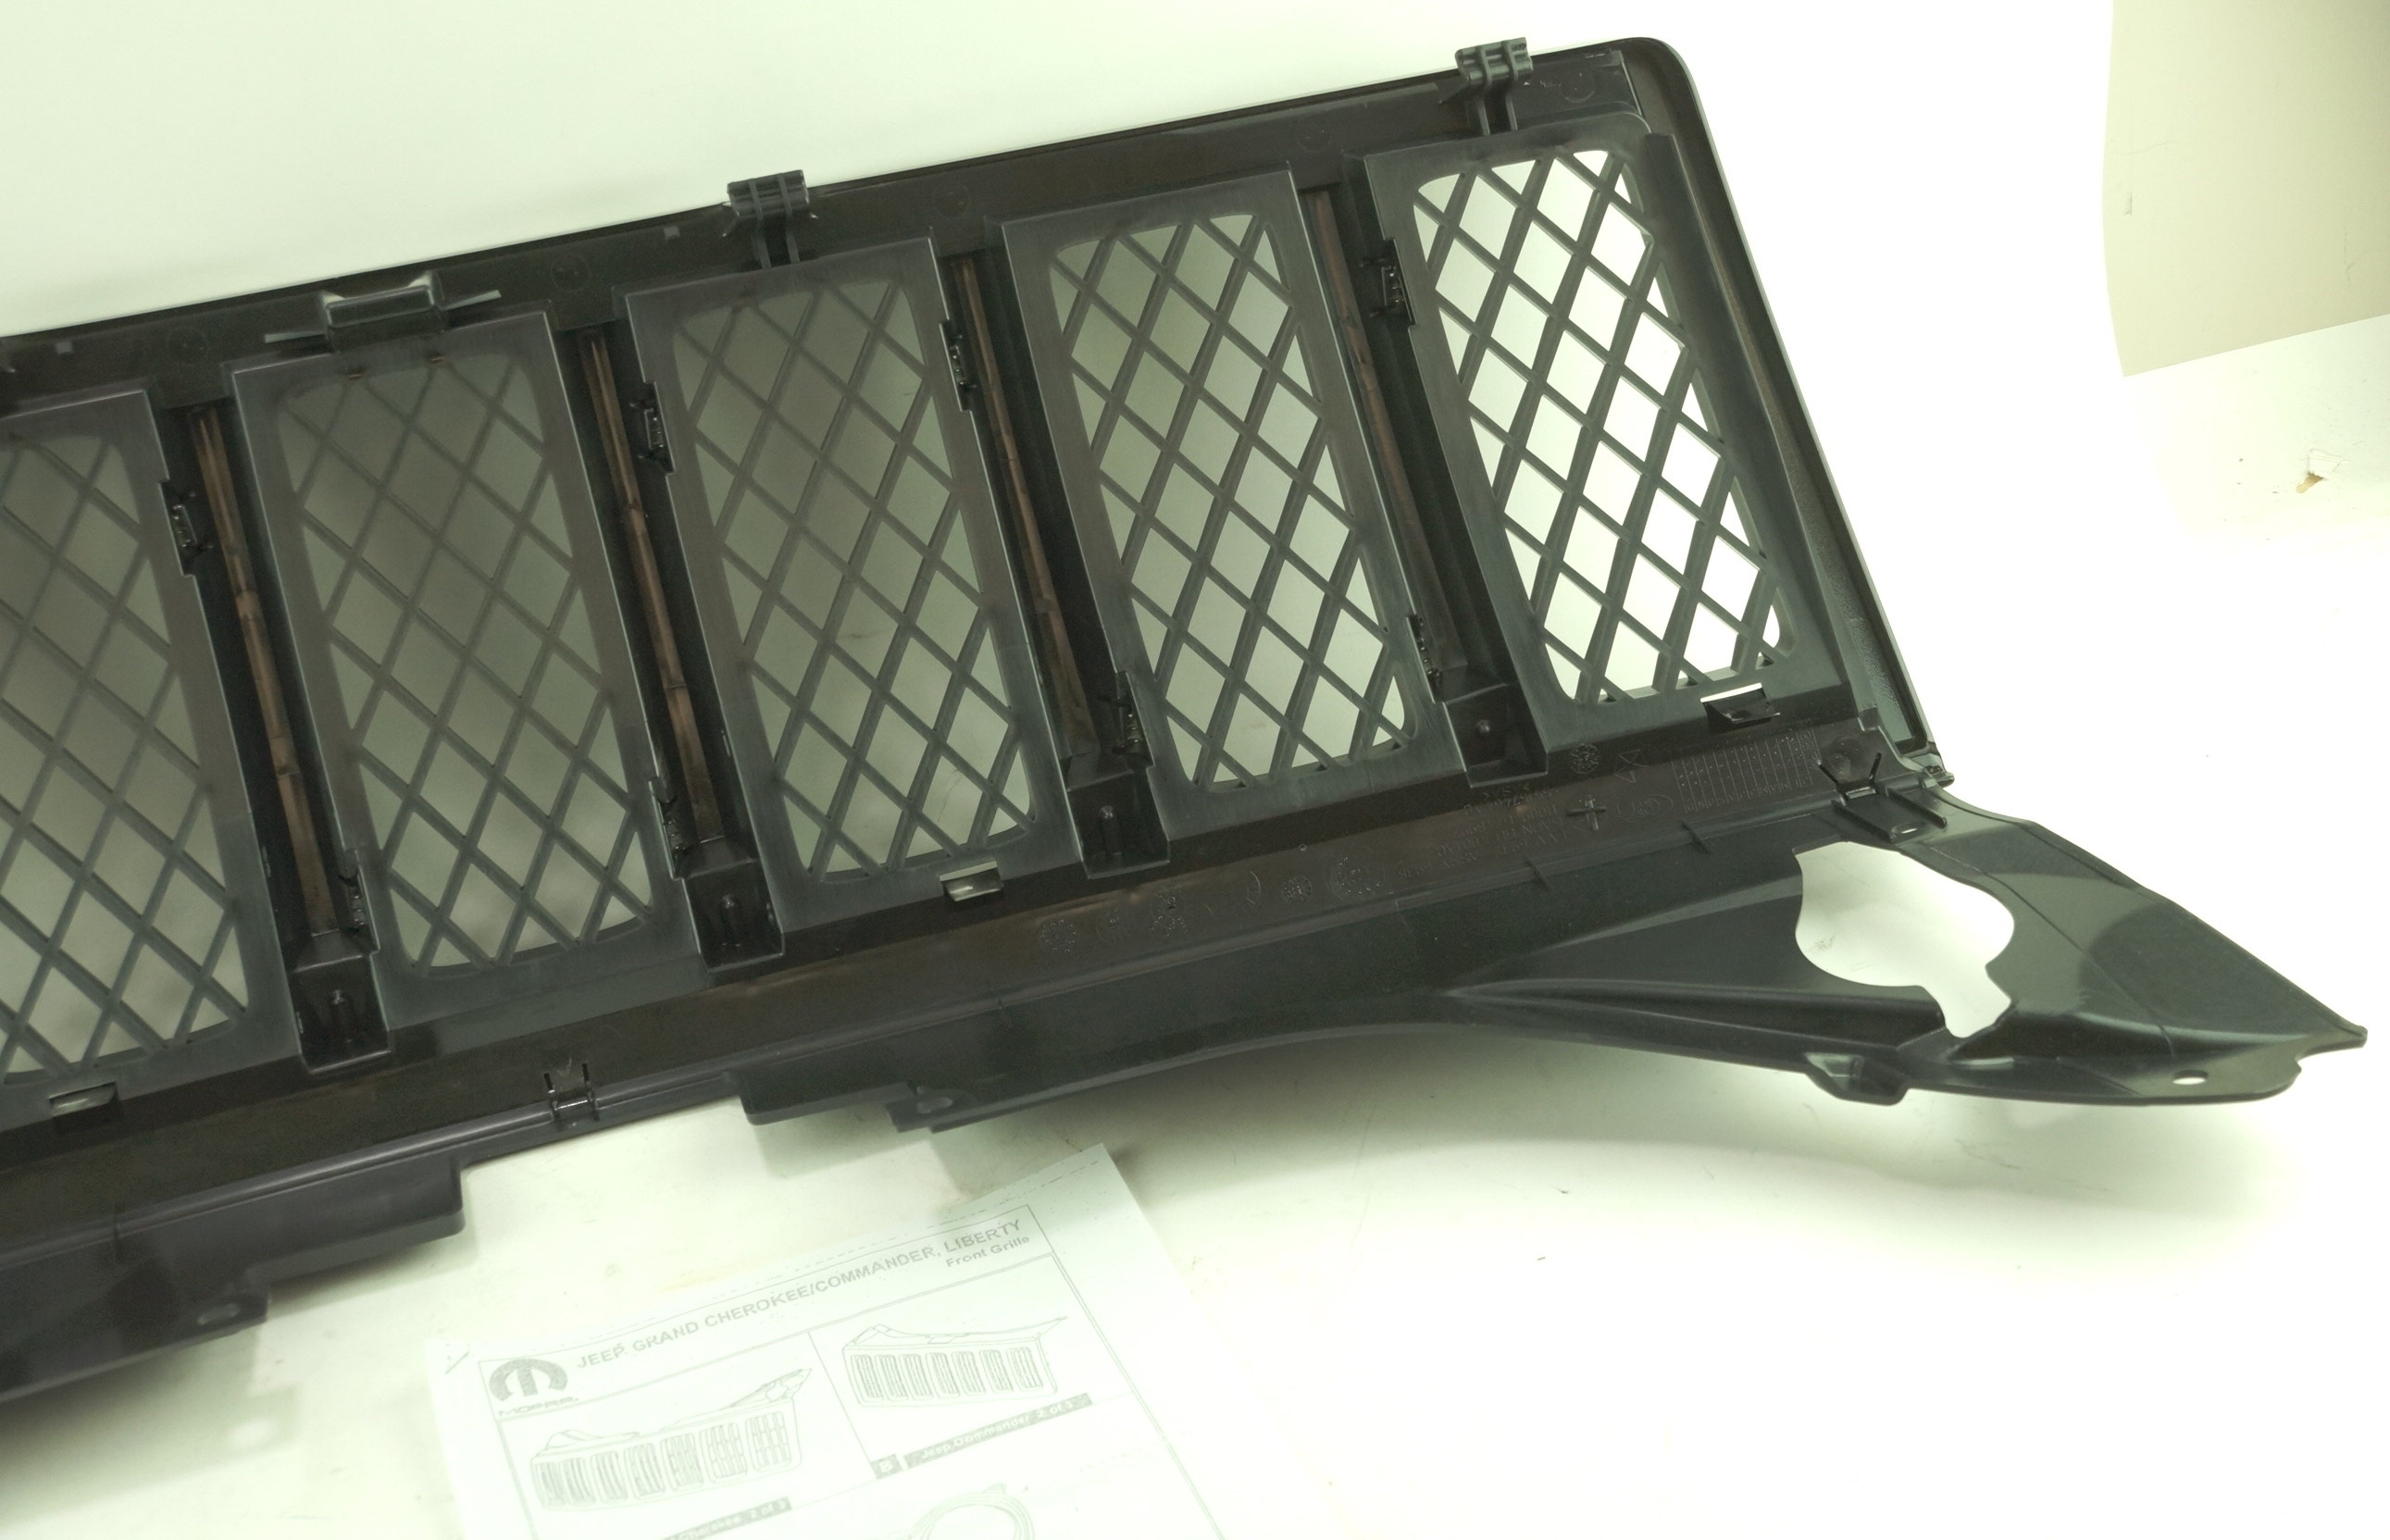 New OEM 1FW131XR-AC 08-10 Jeep Grand Cherokee Black Radiator Grille Assembly - image 2